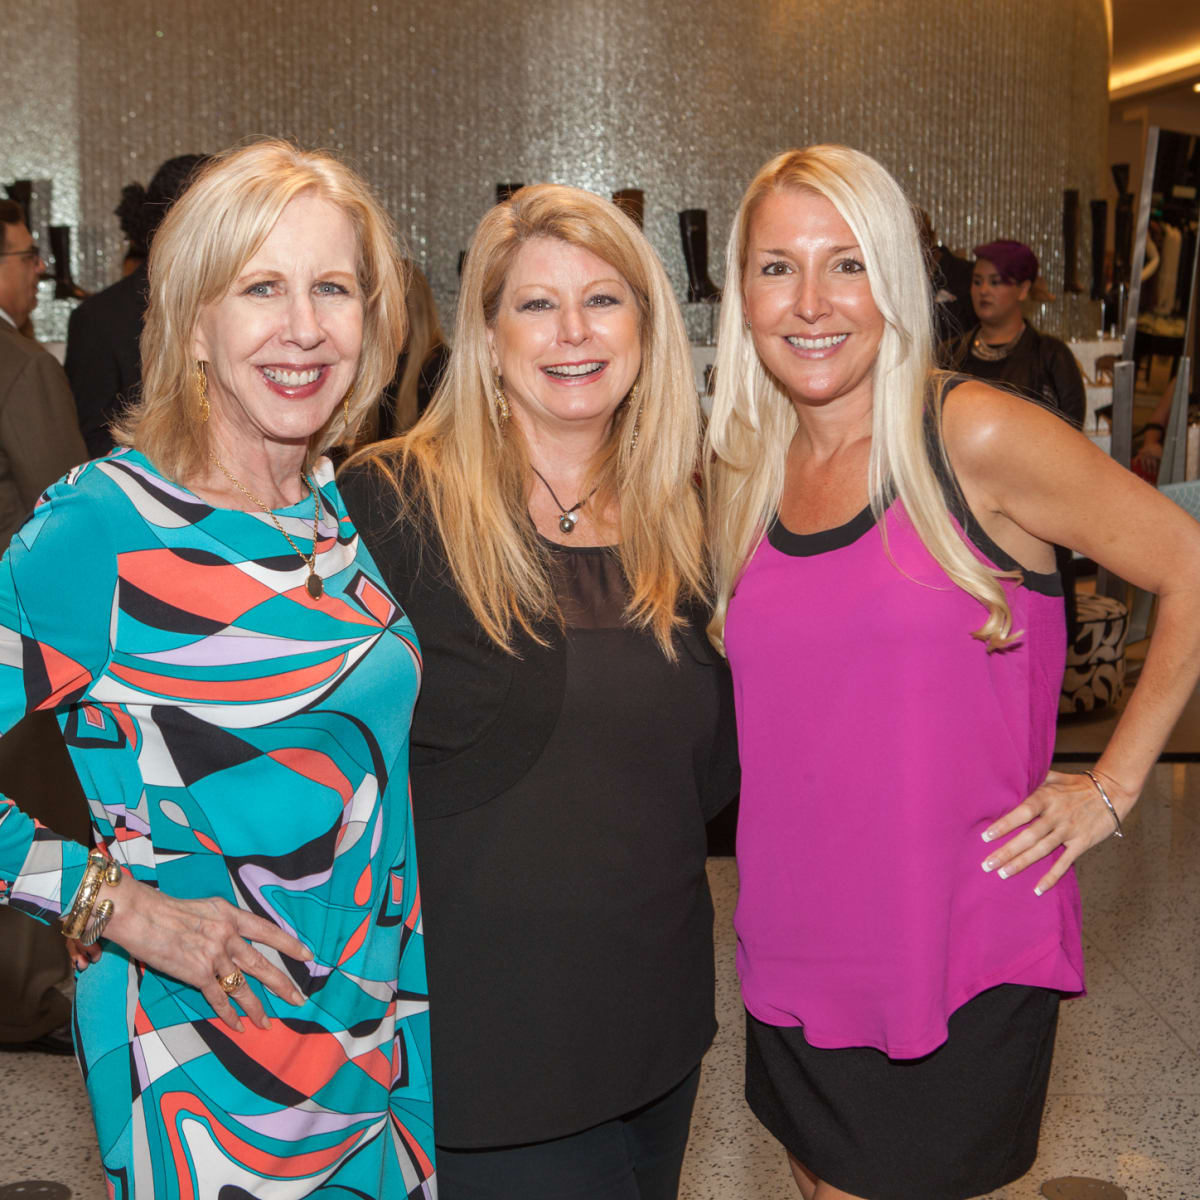 Beth Benson, Paula Lowe, Lisa Bunch at Heart of Fashion kickoff party